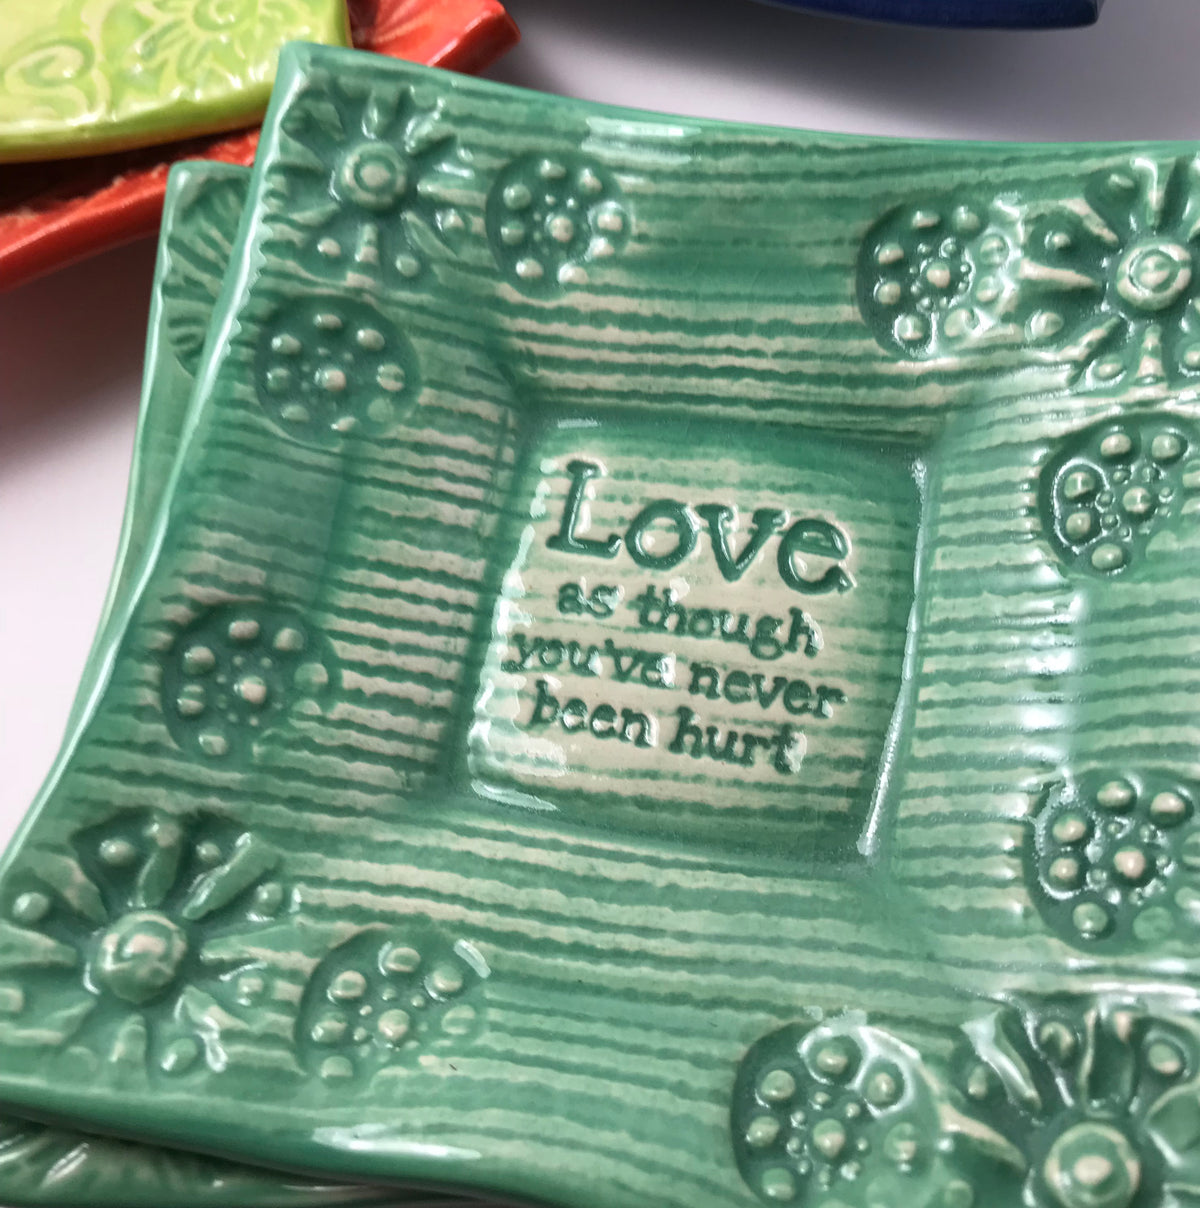 Dipping Dish - Love as Though You've Never Been Hurt""